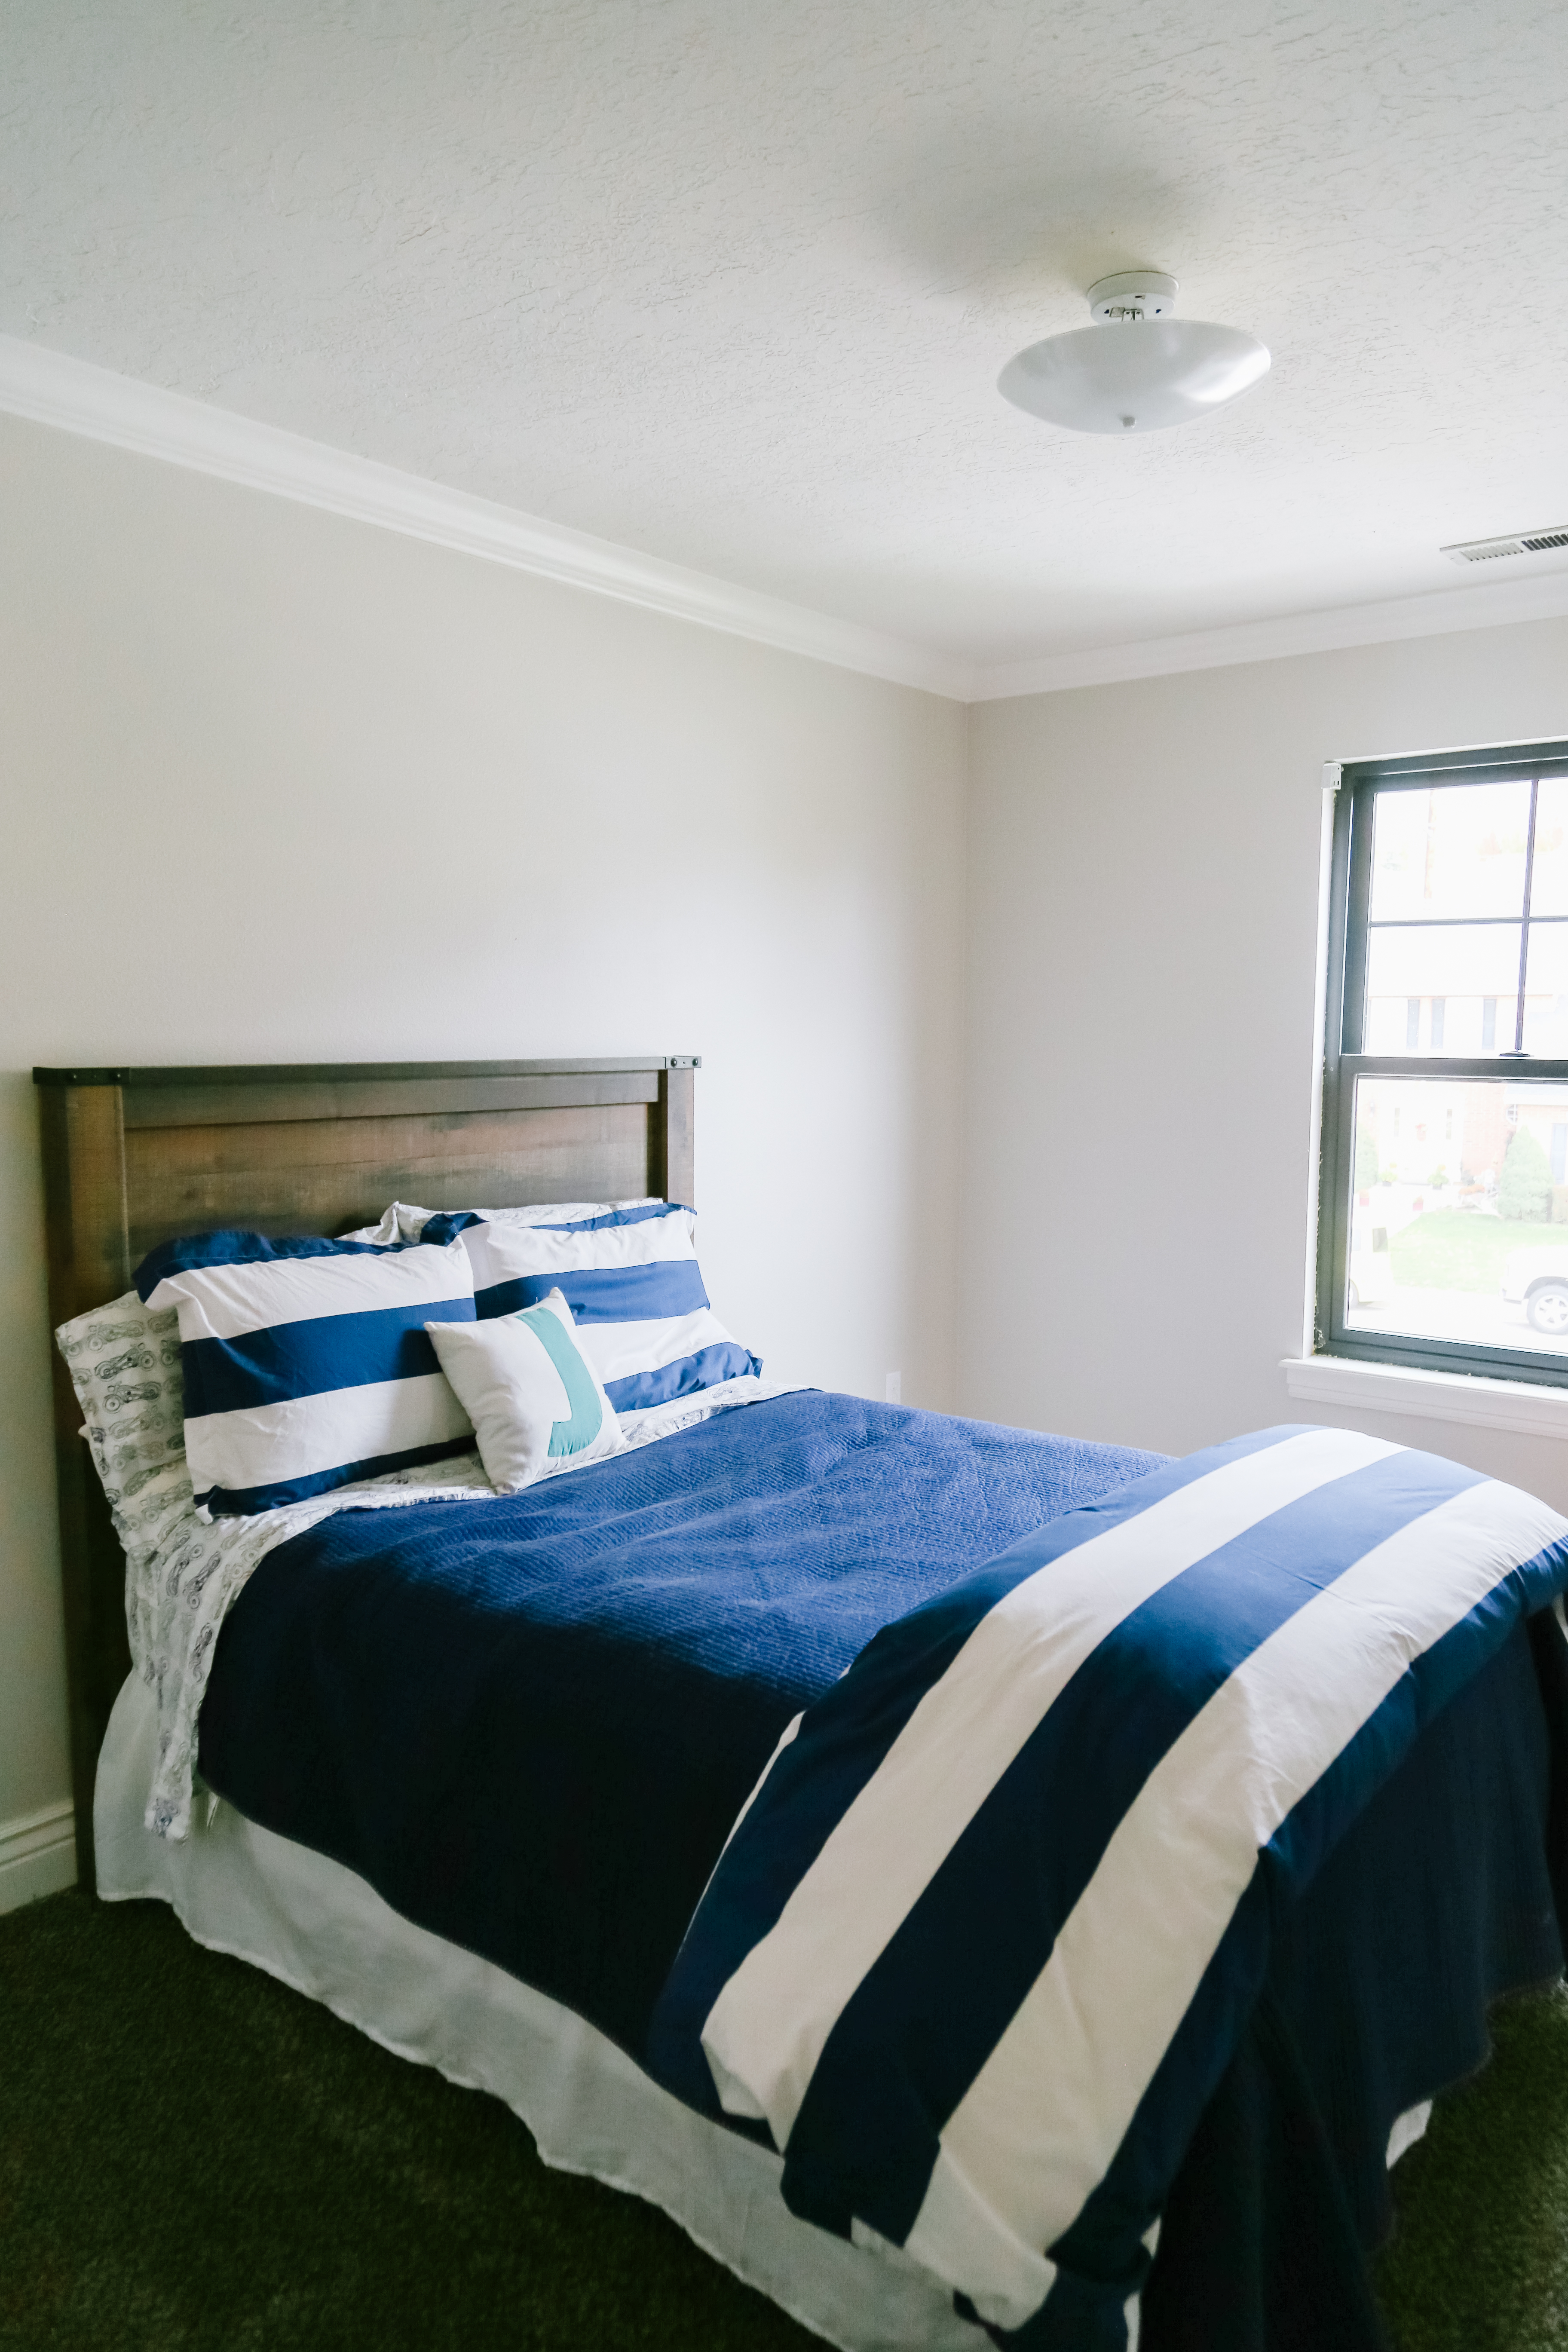 Boys bedroom makeover featured by Utah lifestyle blog, By Jen Rose: before